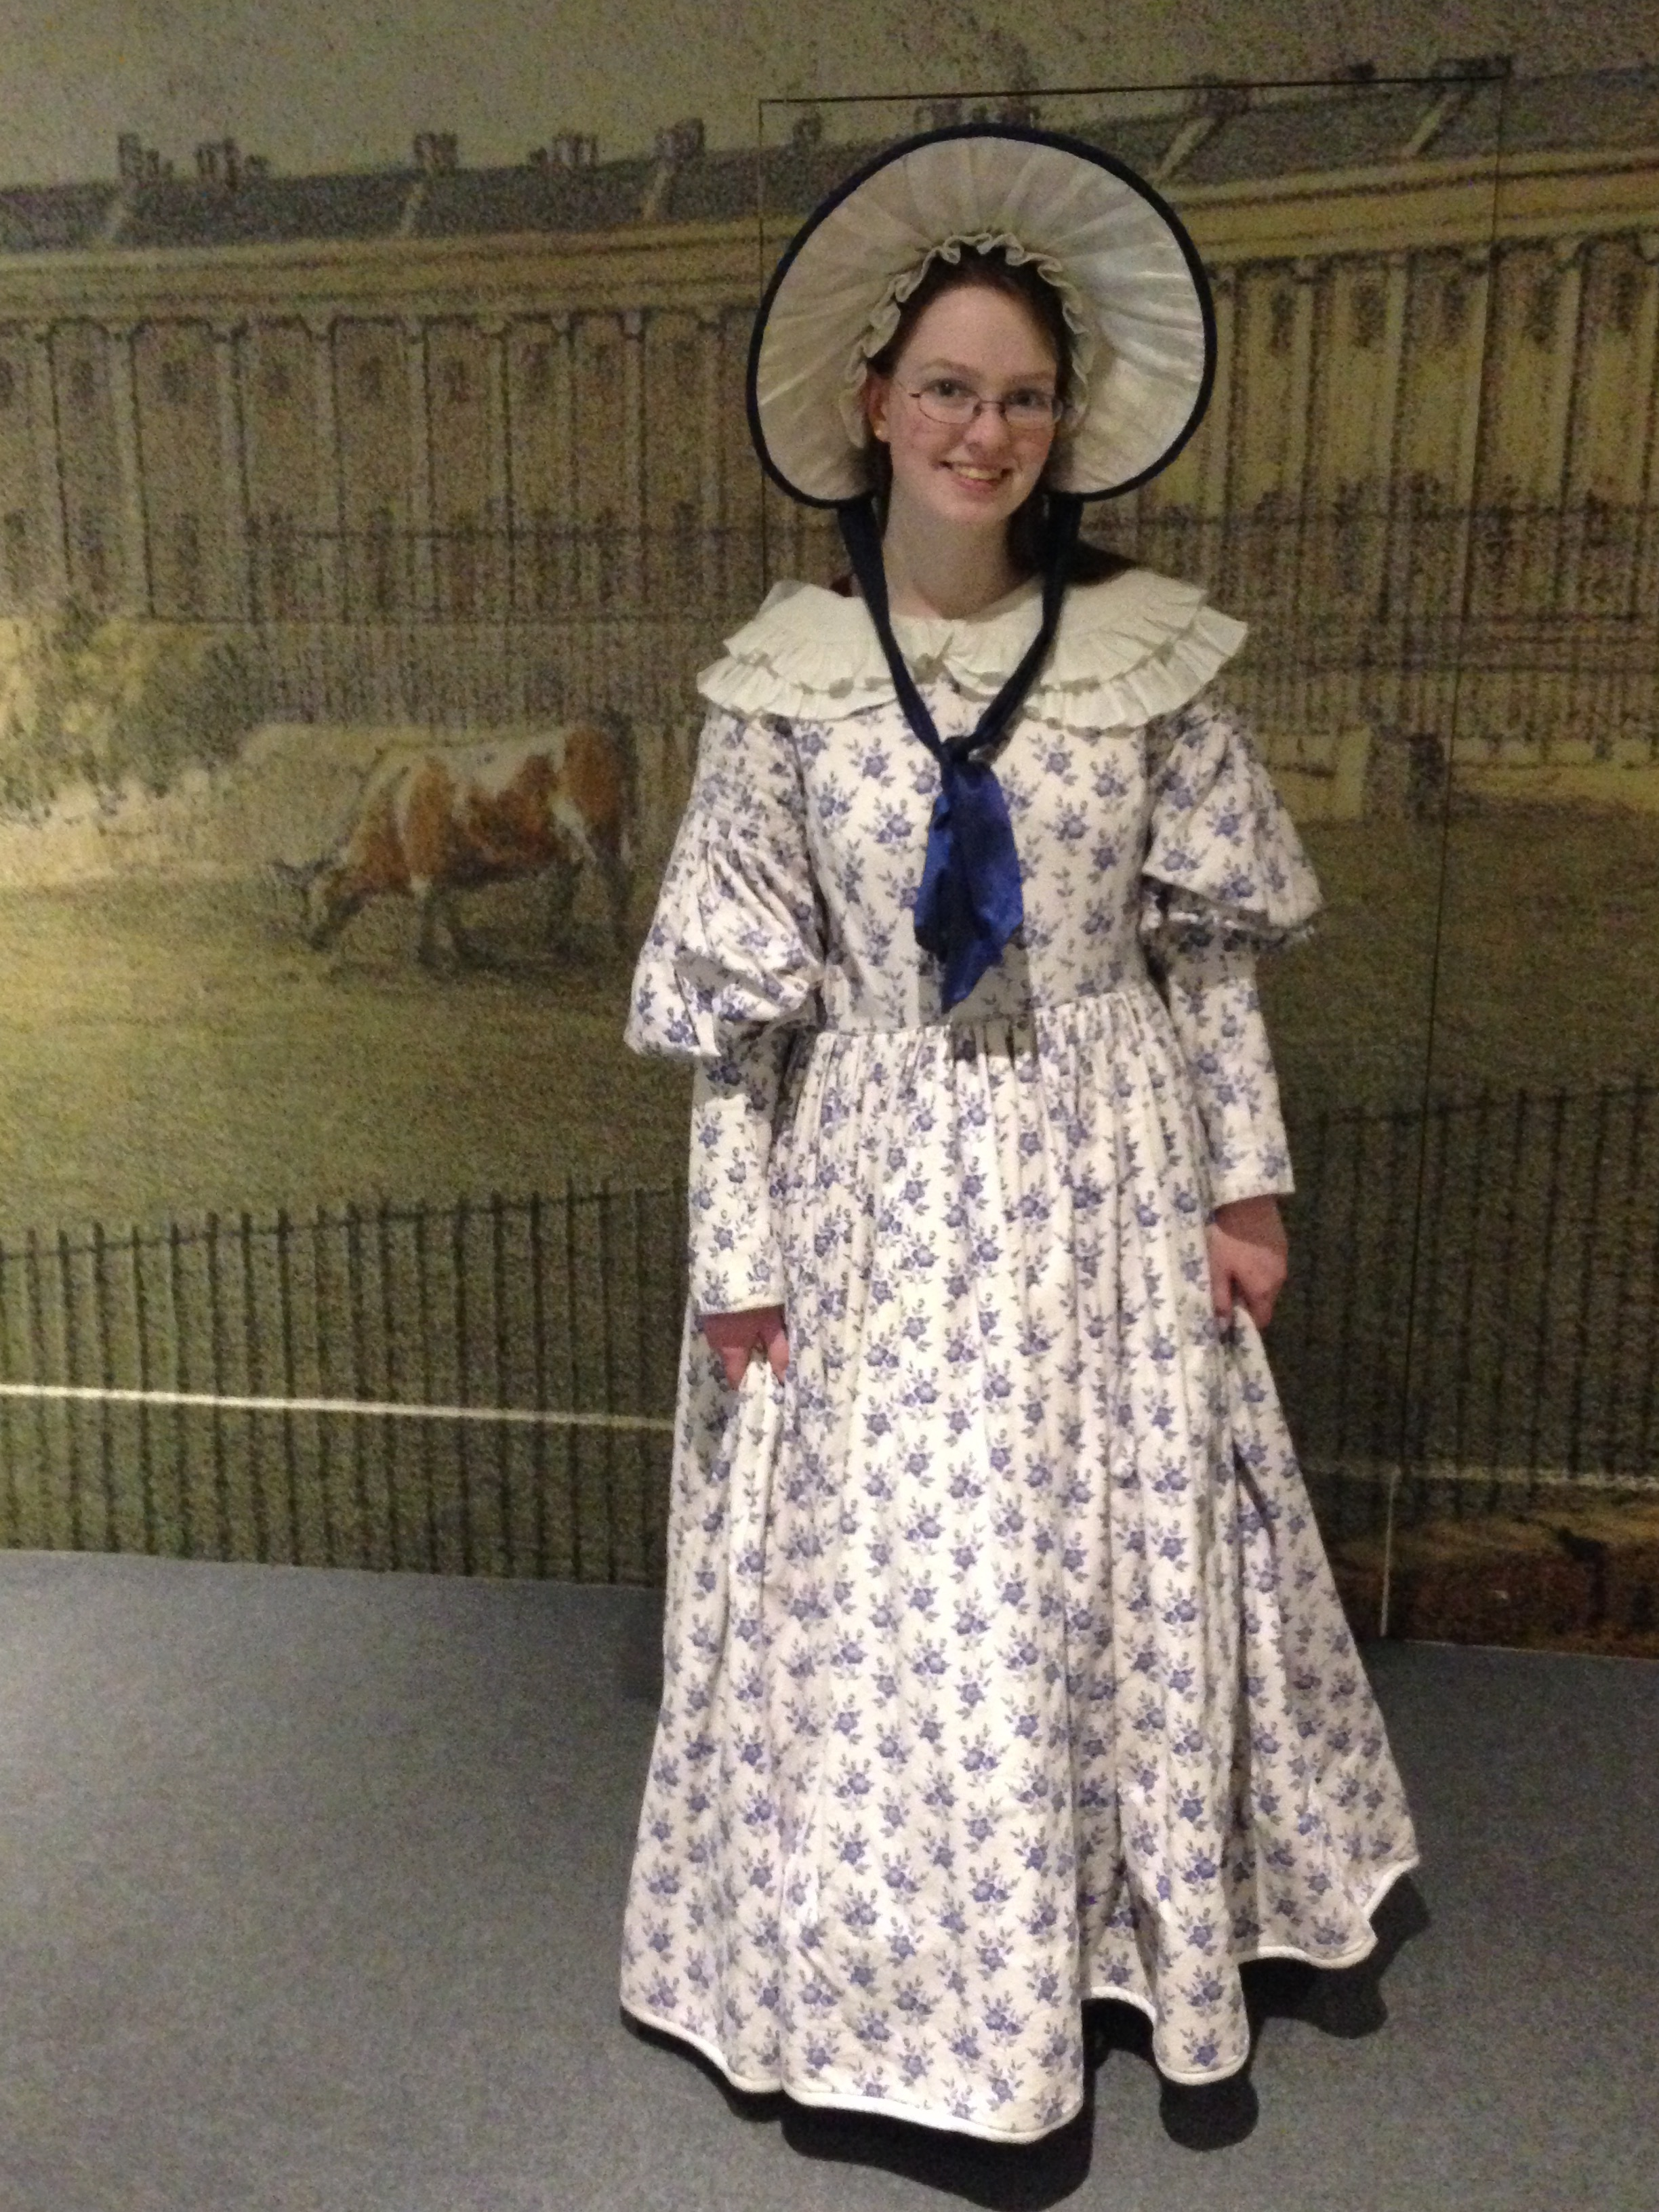 Me in a 19th-century dress and bonnet.